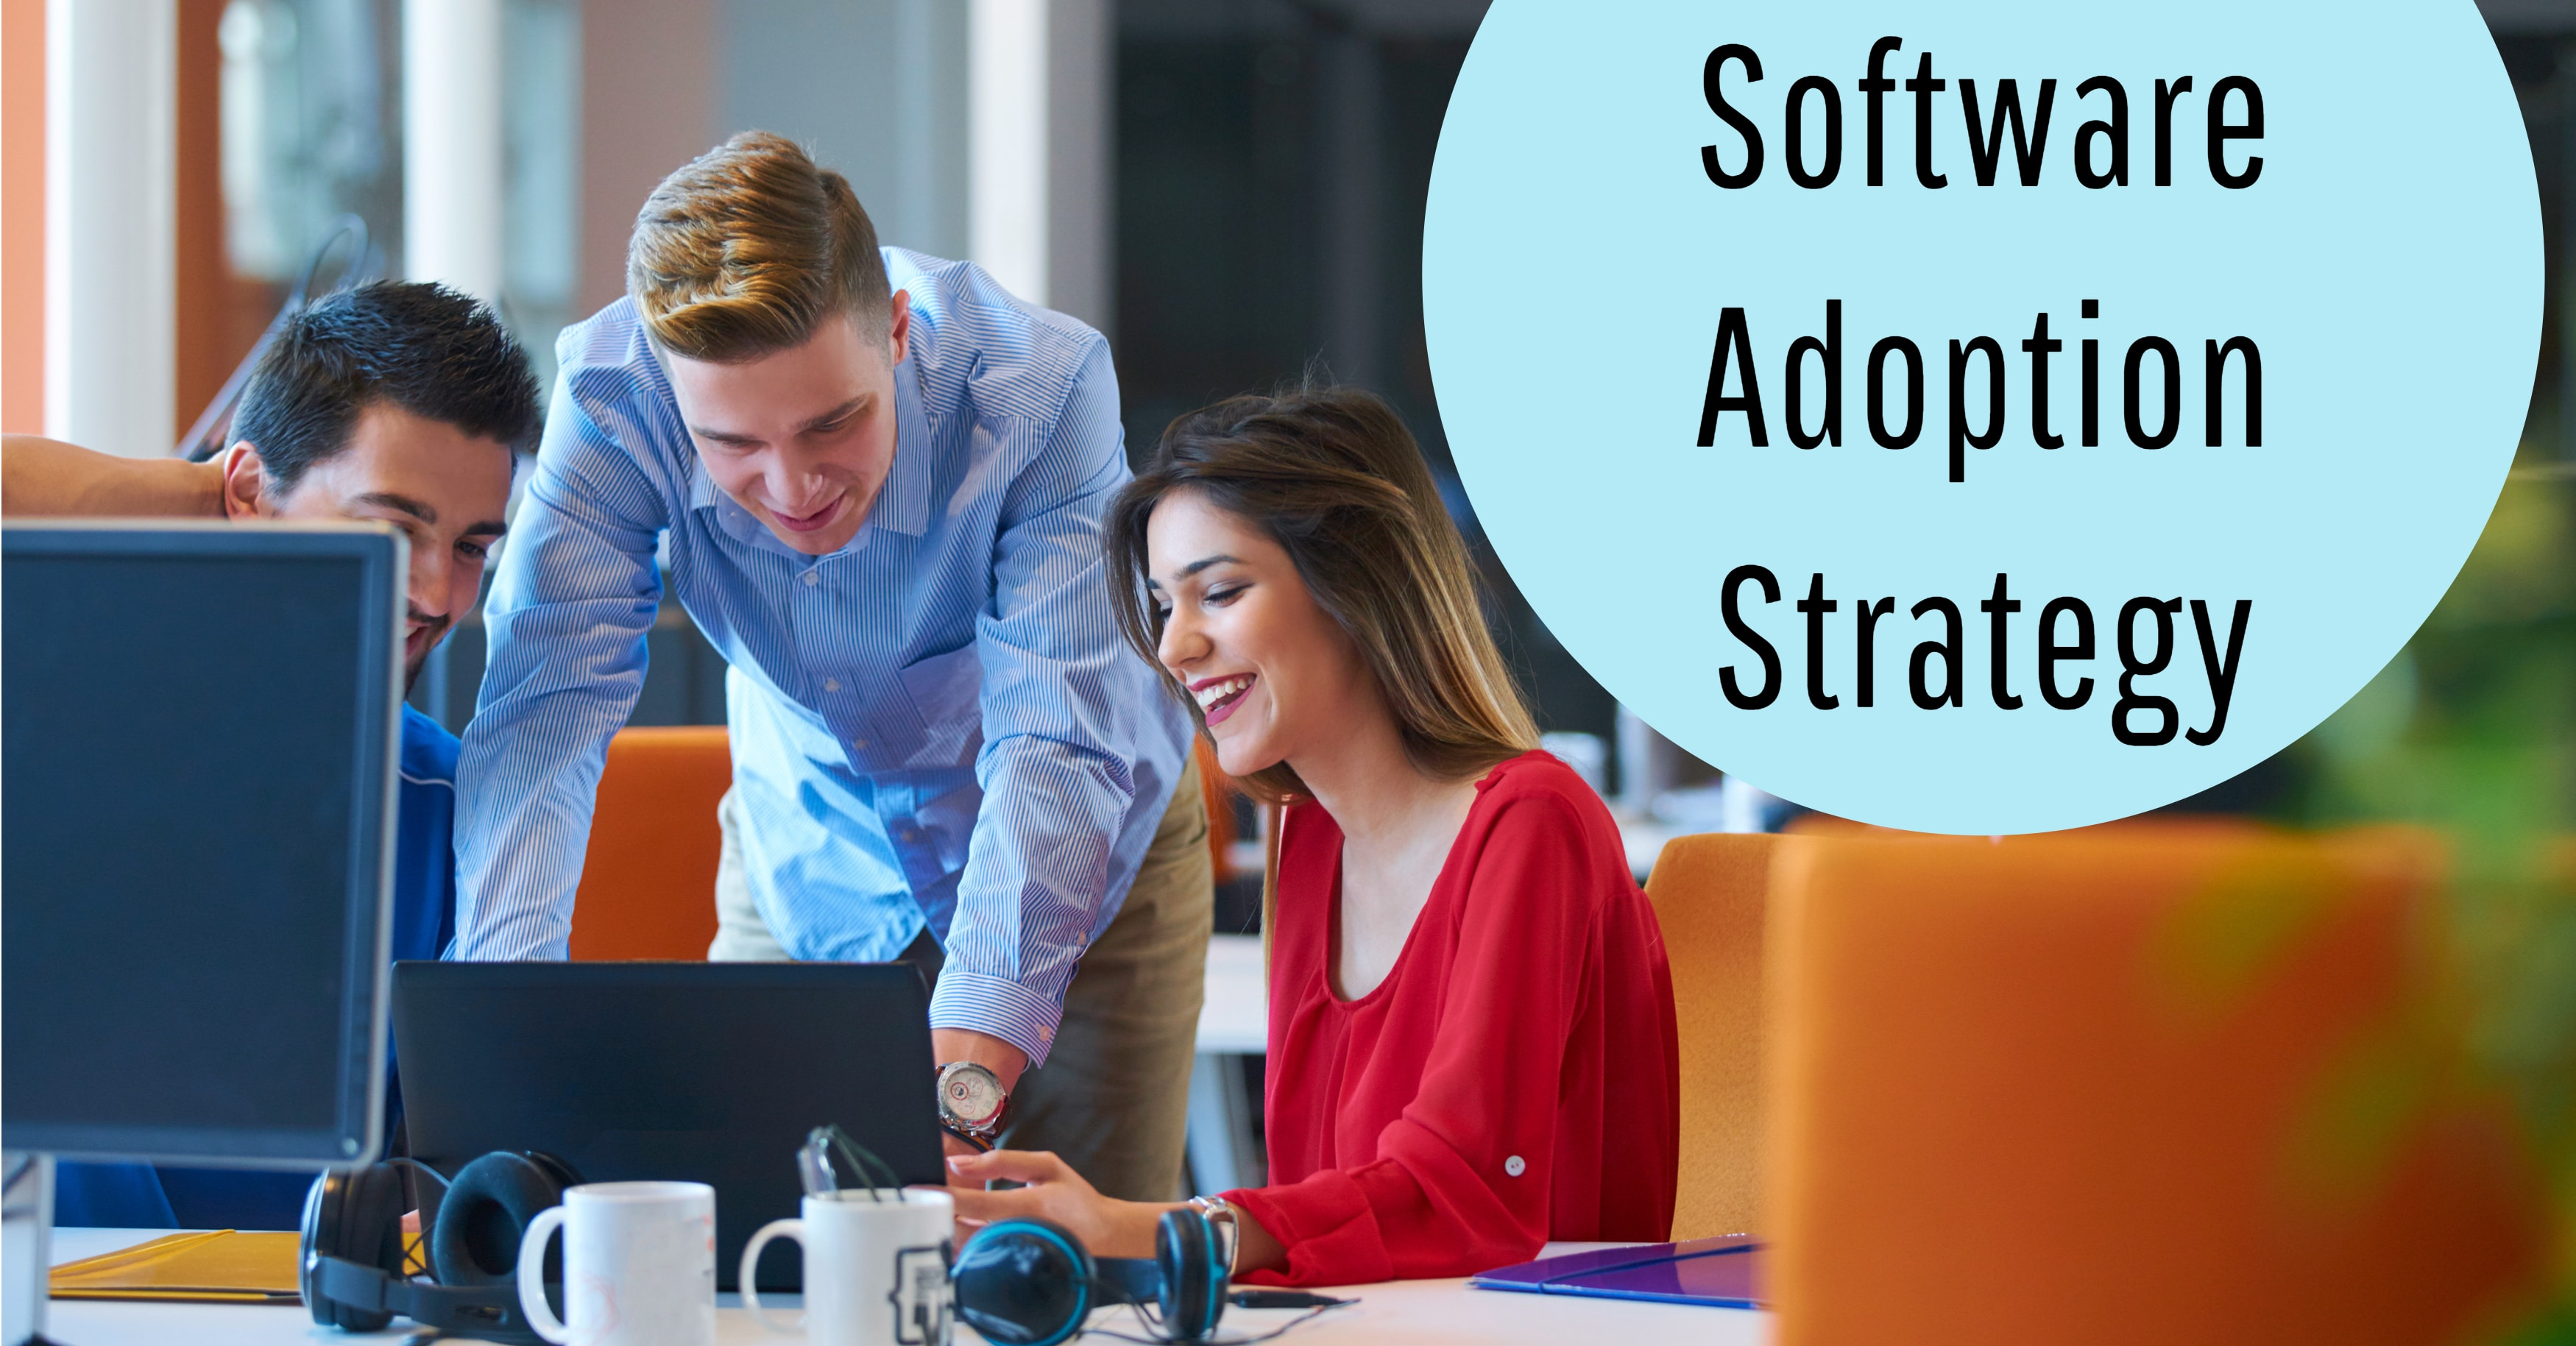 Software Adoption Strategy